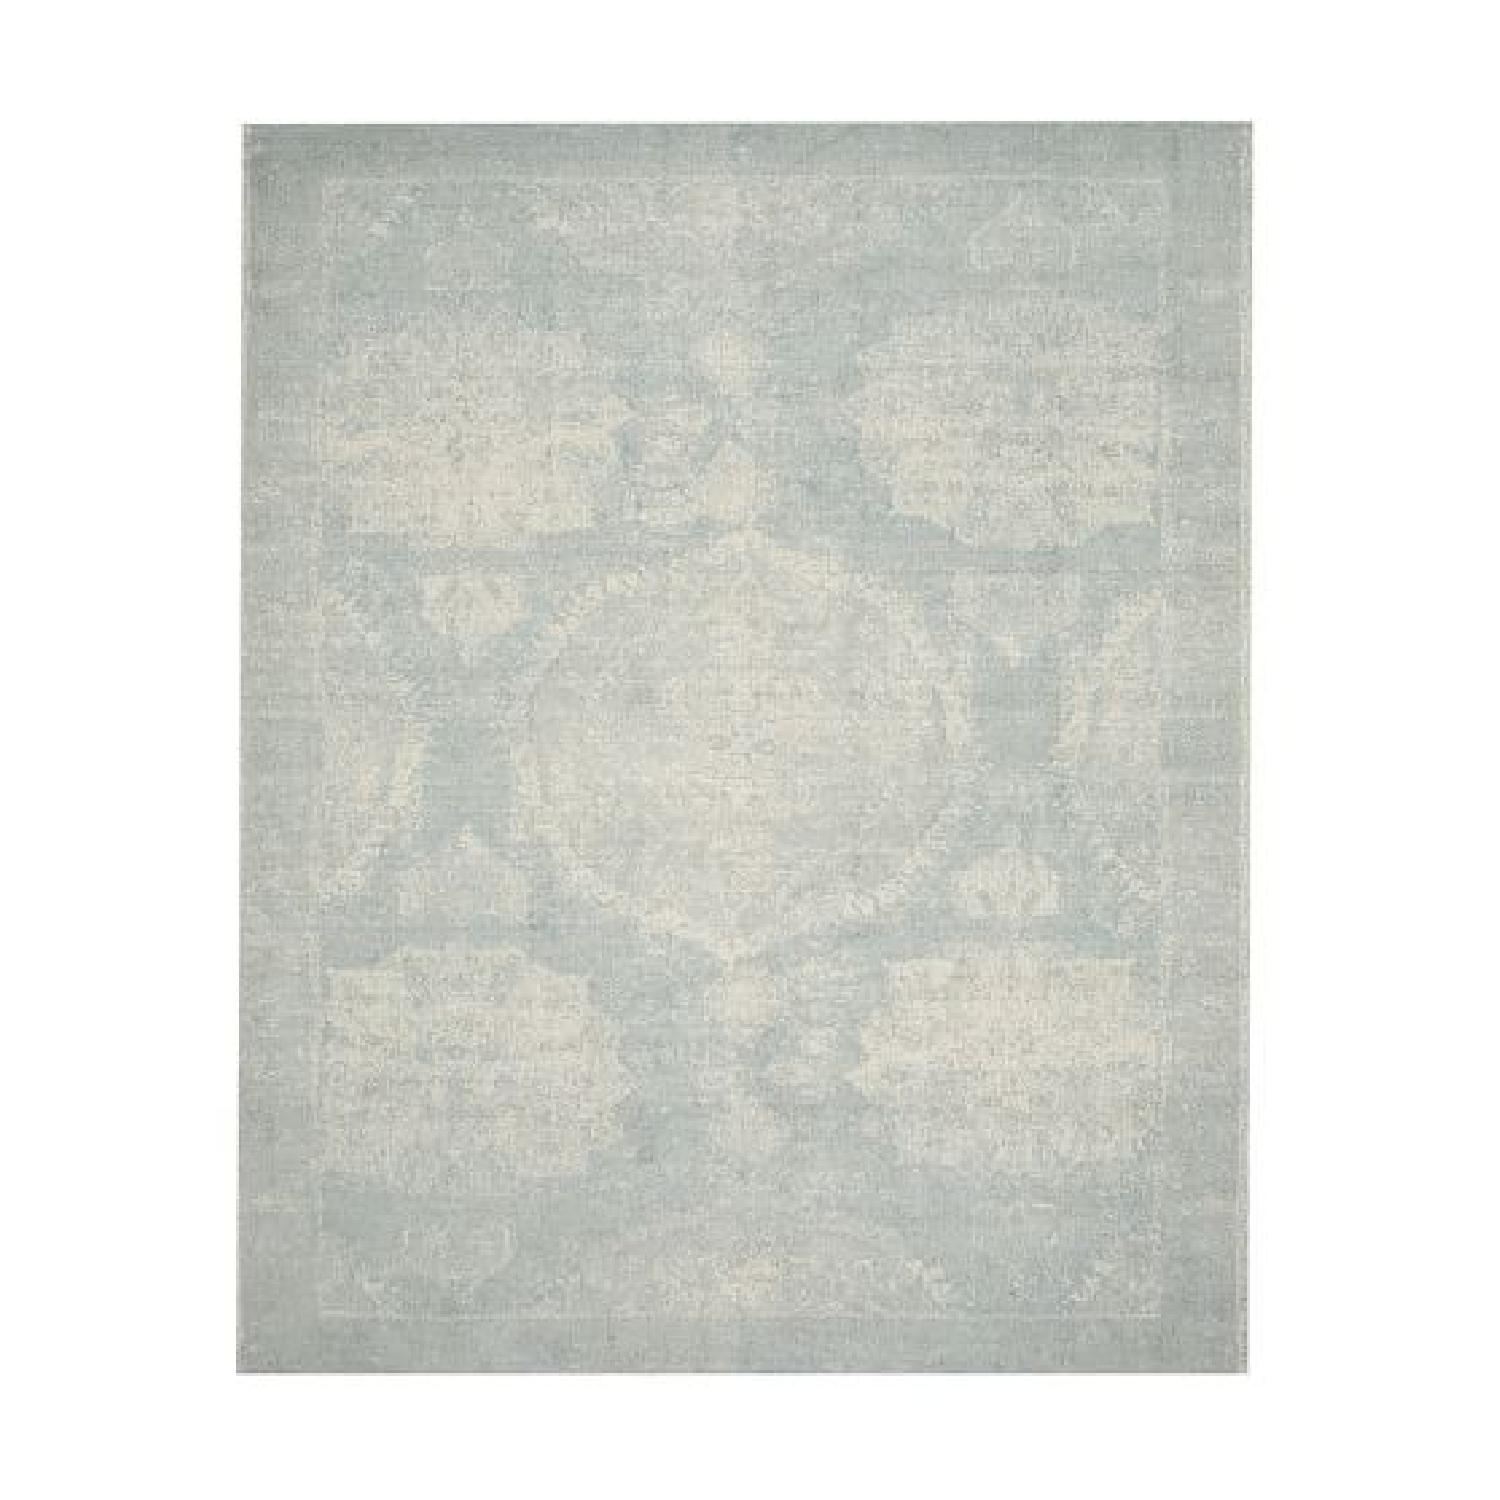 Pottery Barn Barret Printed Rug in Porcelain Blue - image-0